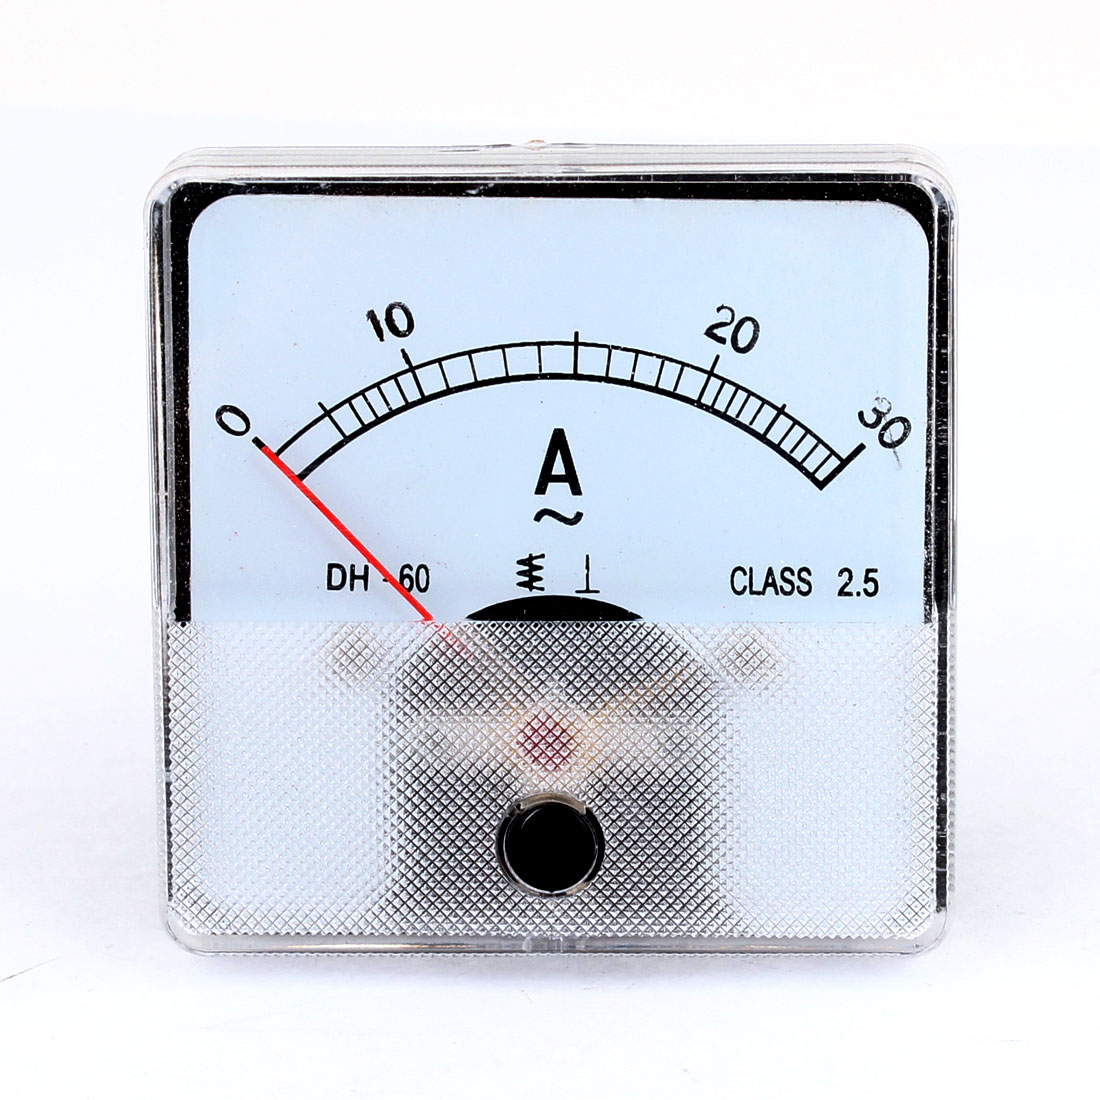 AC 30A Square Analogue Needle Amperemeter Panel Meter Clear Black